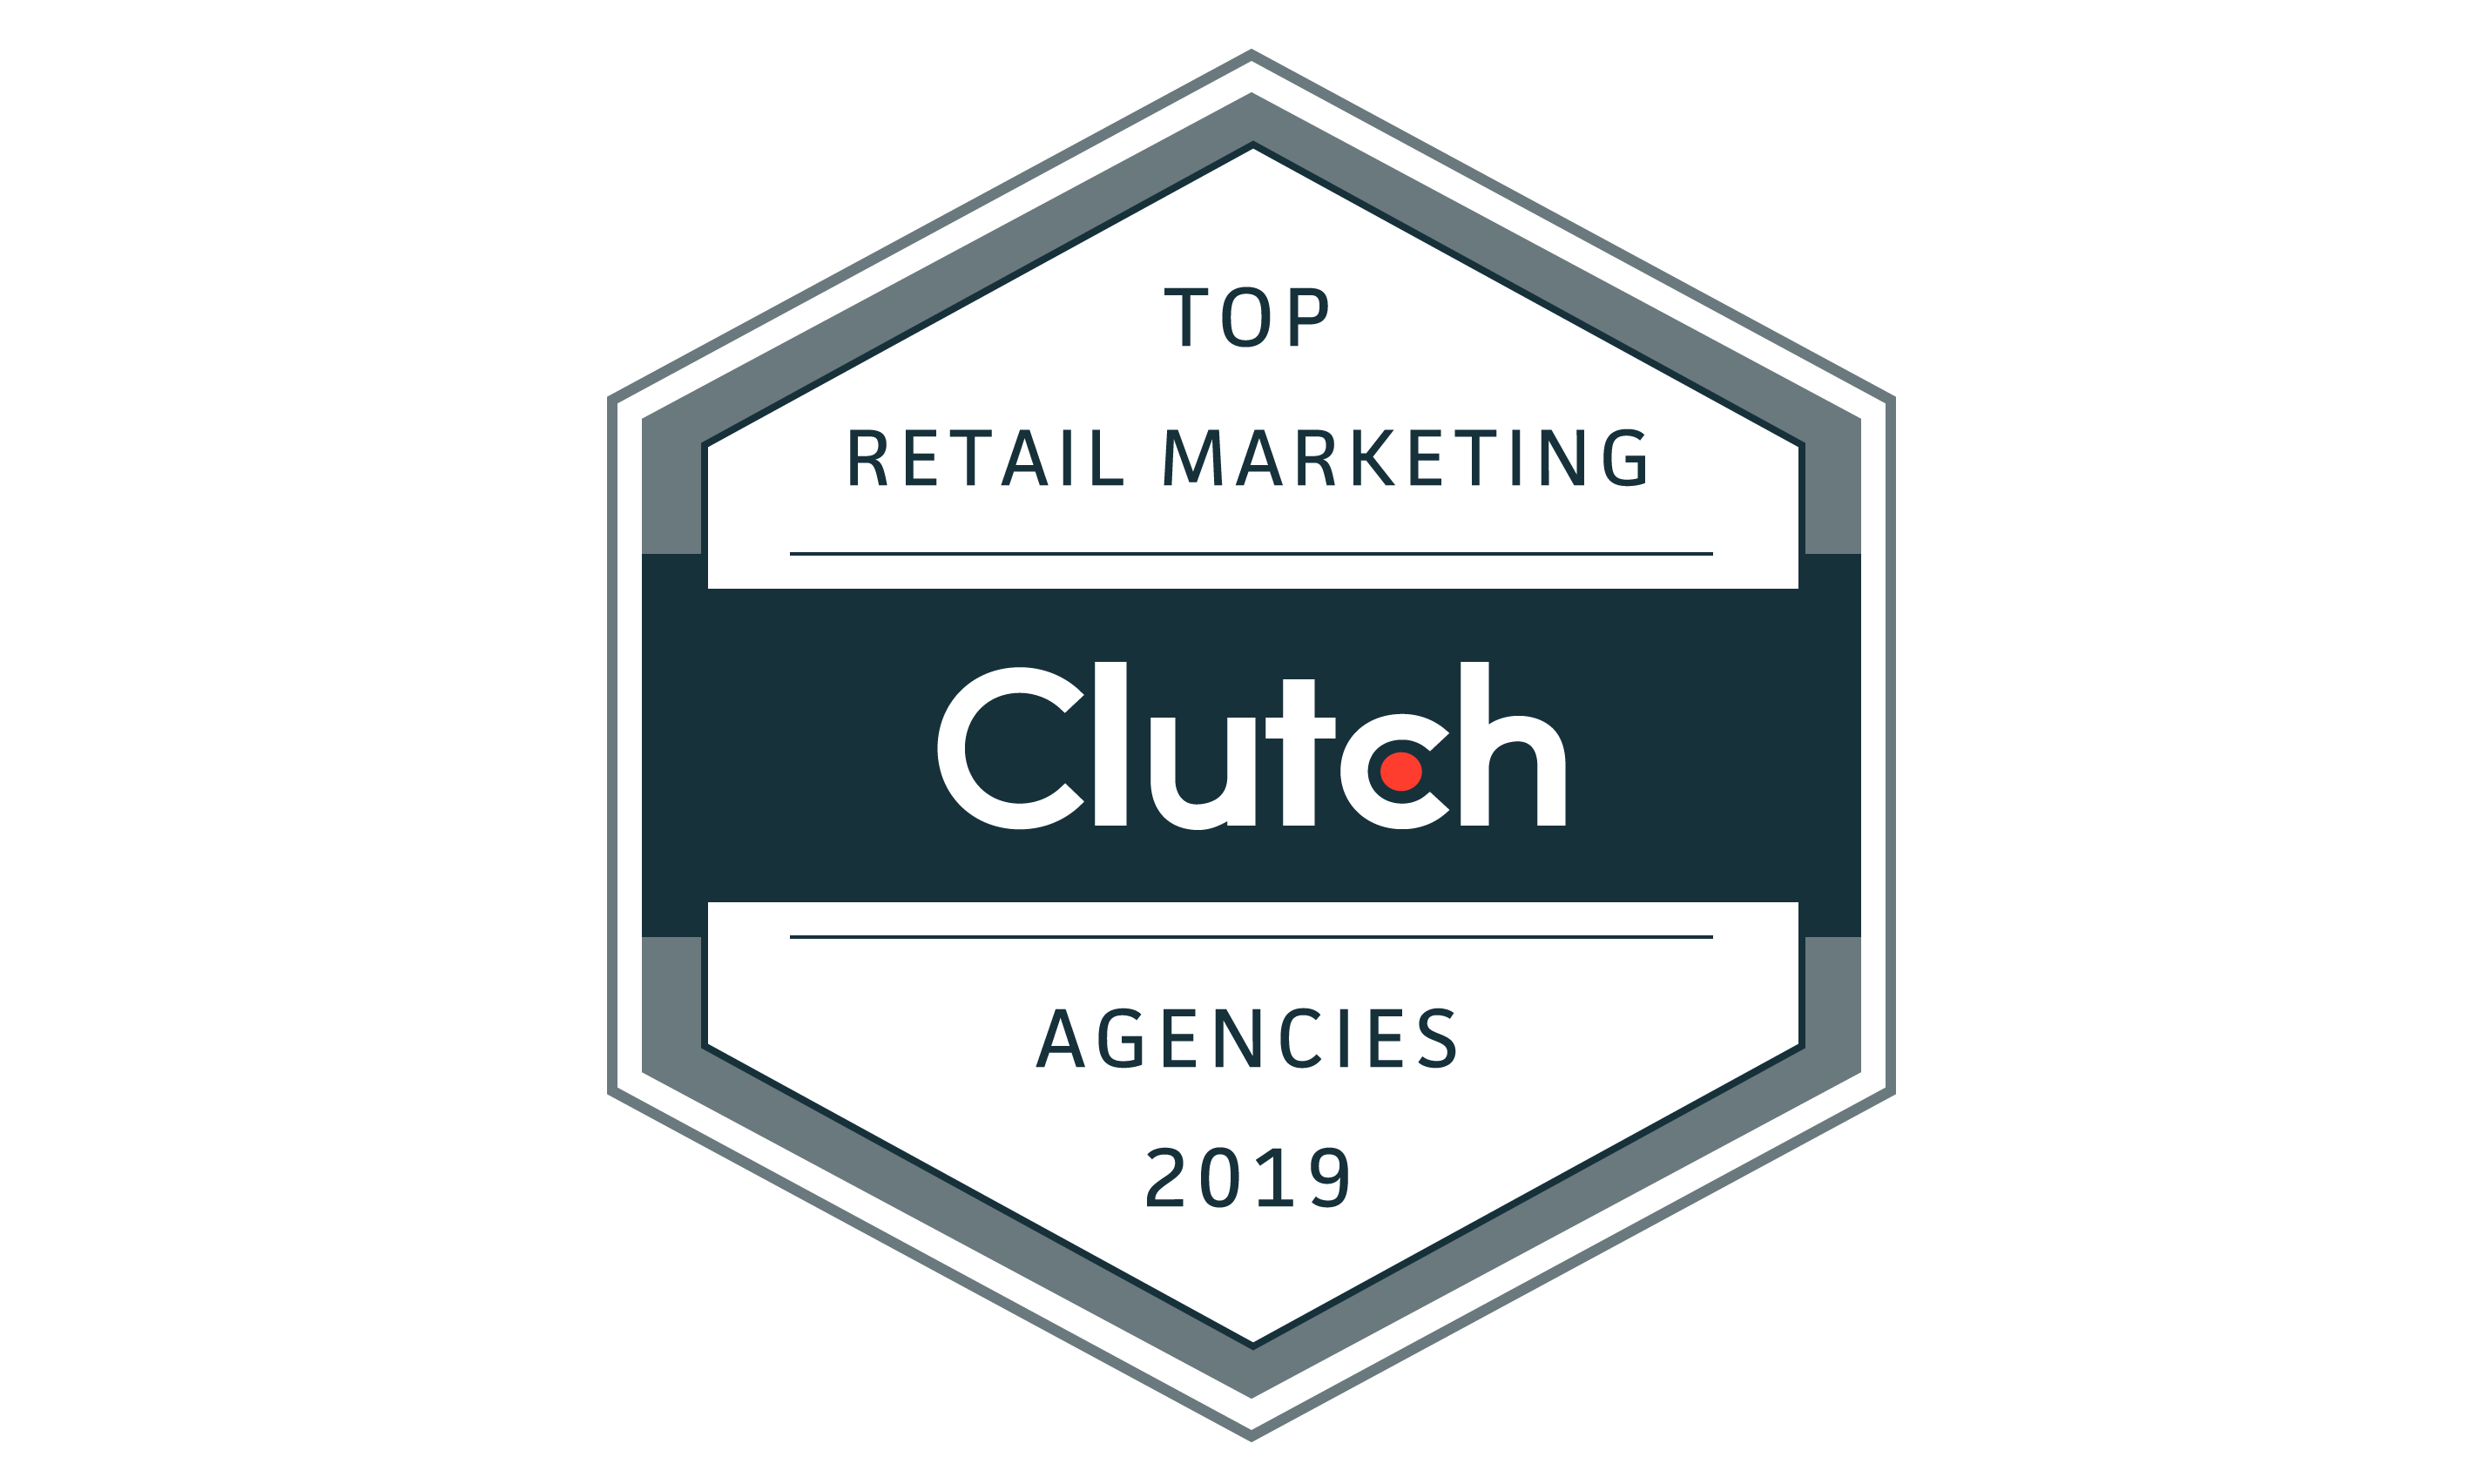 Clutch Awards OKD Marketing a Leading  Retail Advertising and Marketing Firm